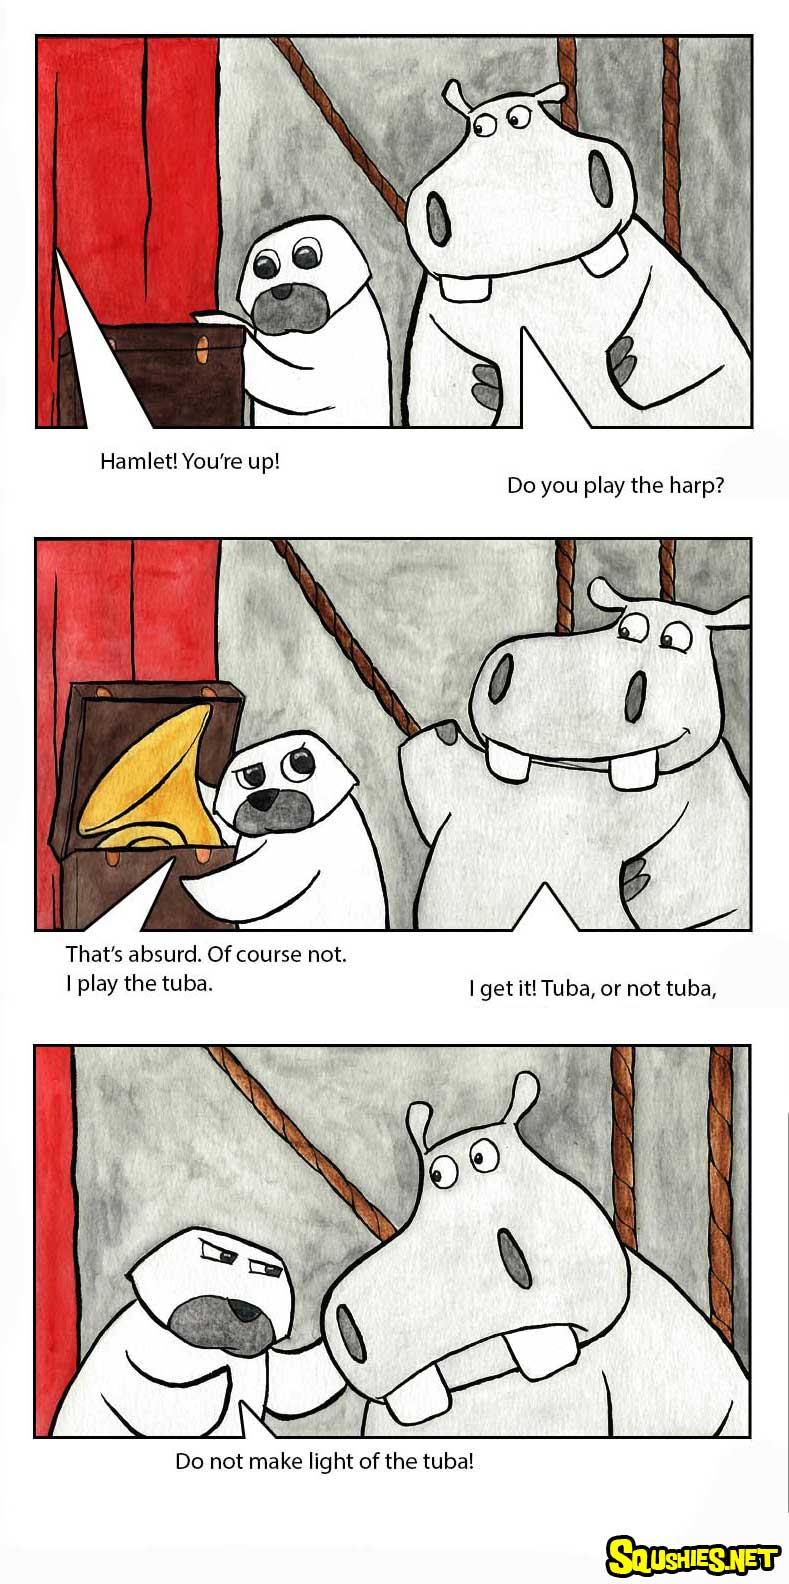 The Squshies web comic! Read about the adventures of Beauregard the Hippo and Reginald the Rhino - Battle of the Bands - Week 4